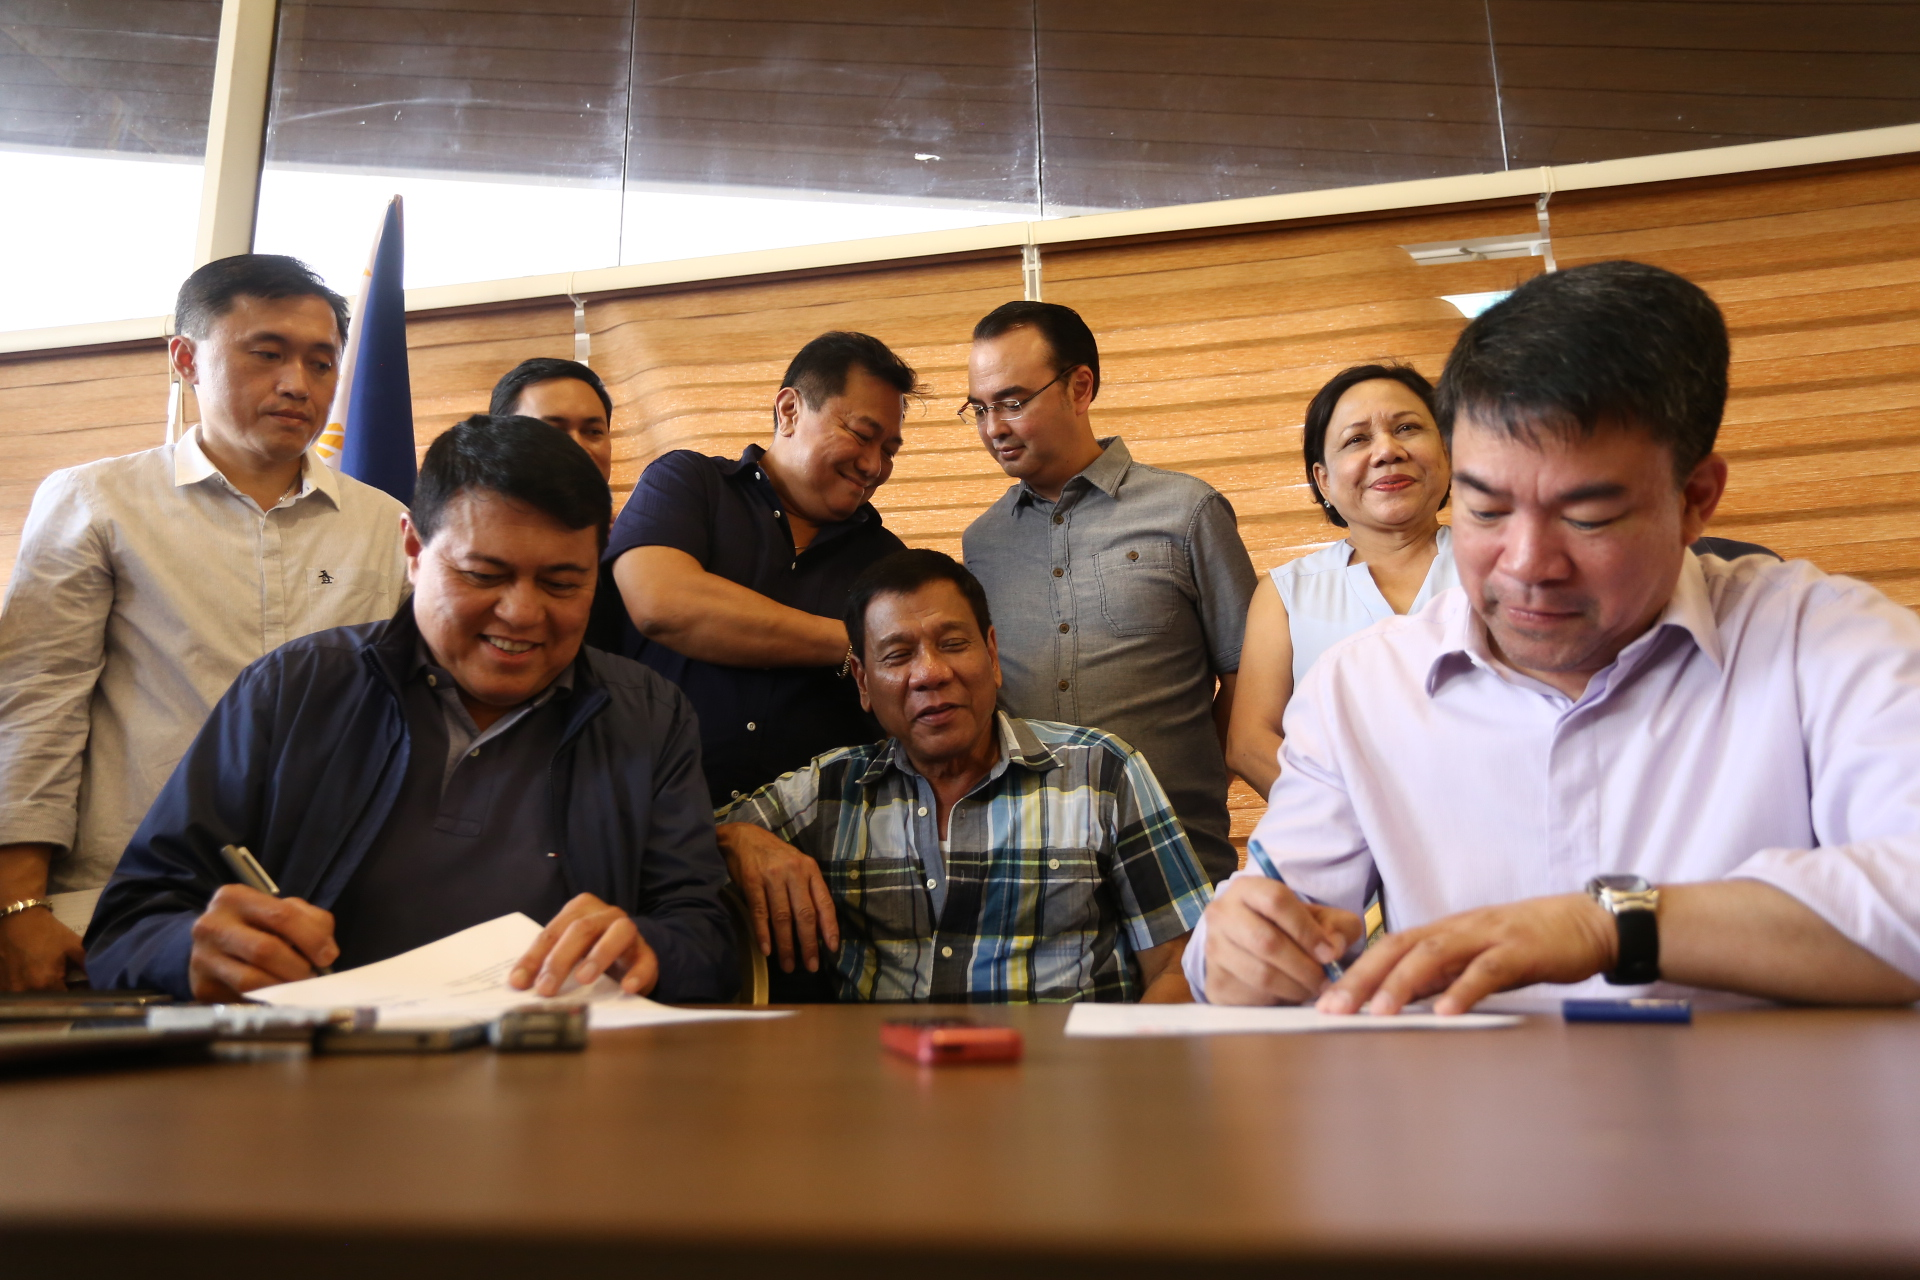 Duterte's Cabinet choices ruffling feathers in his own circle